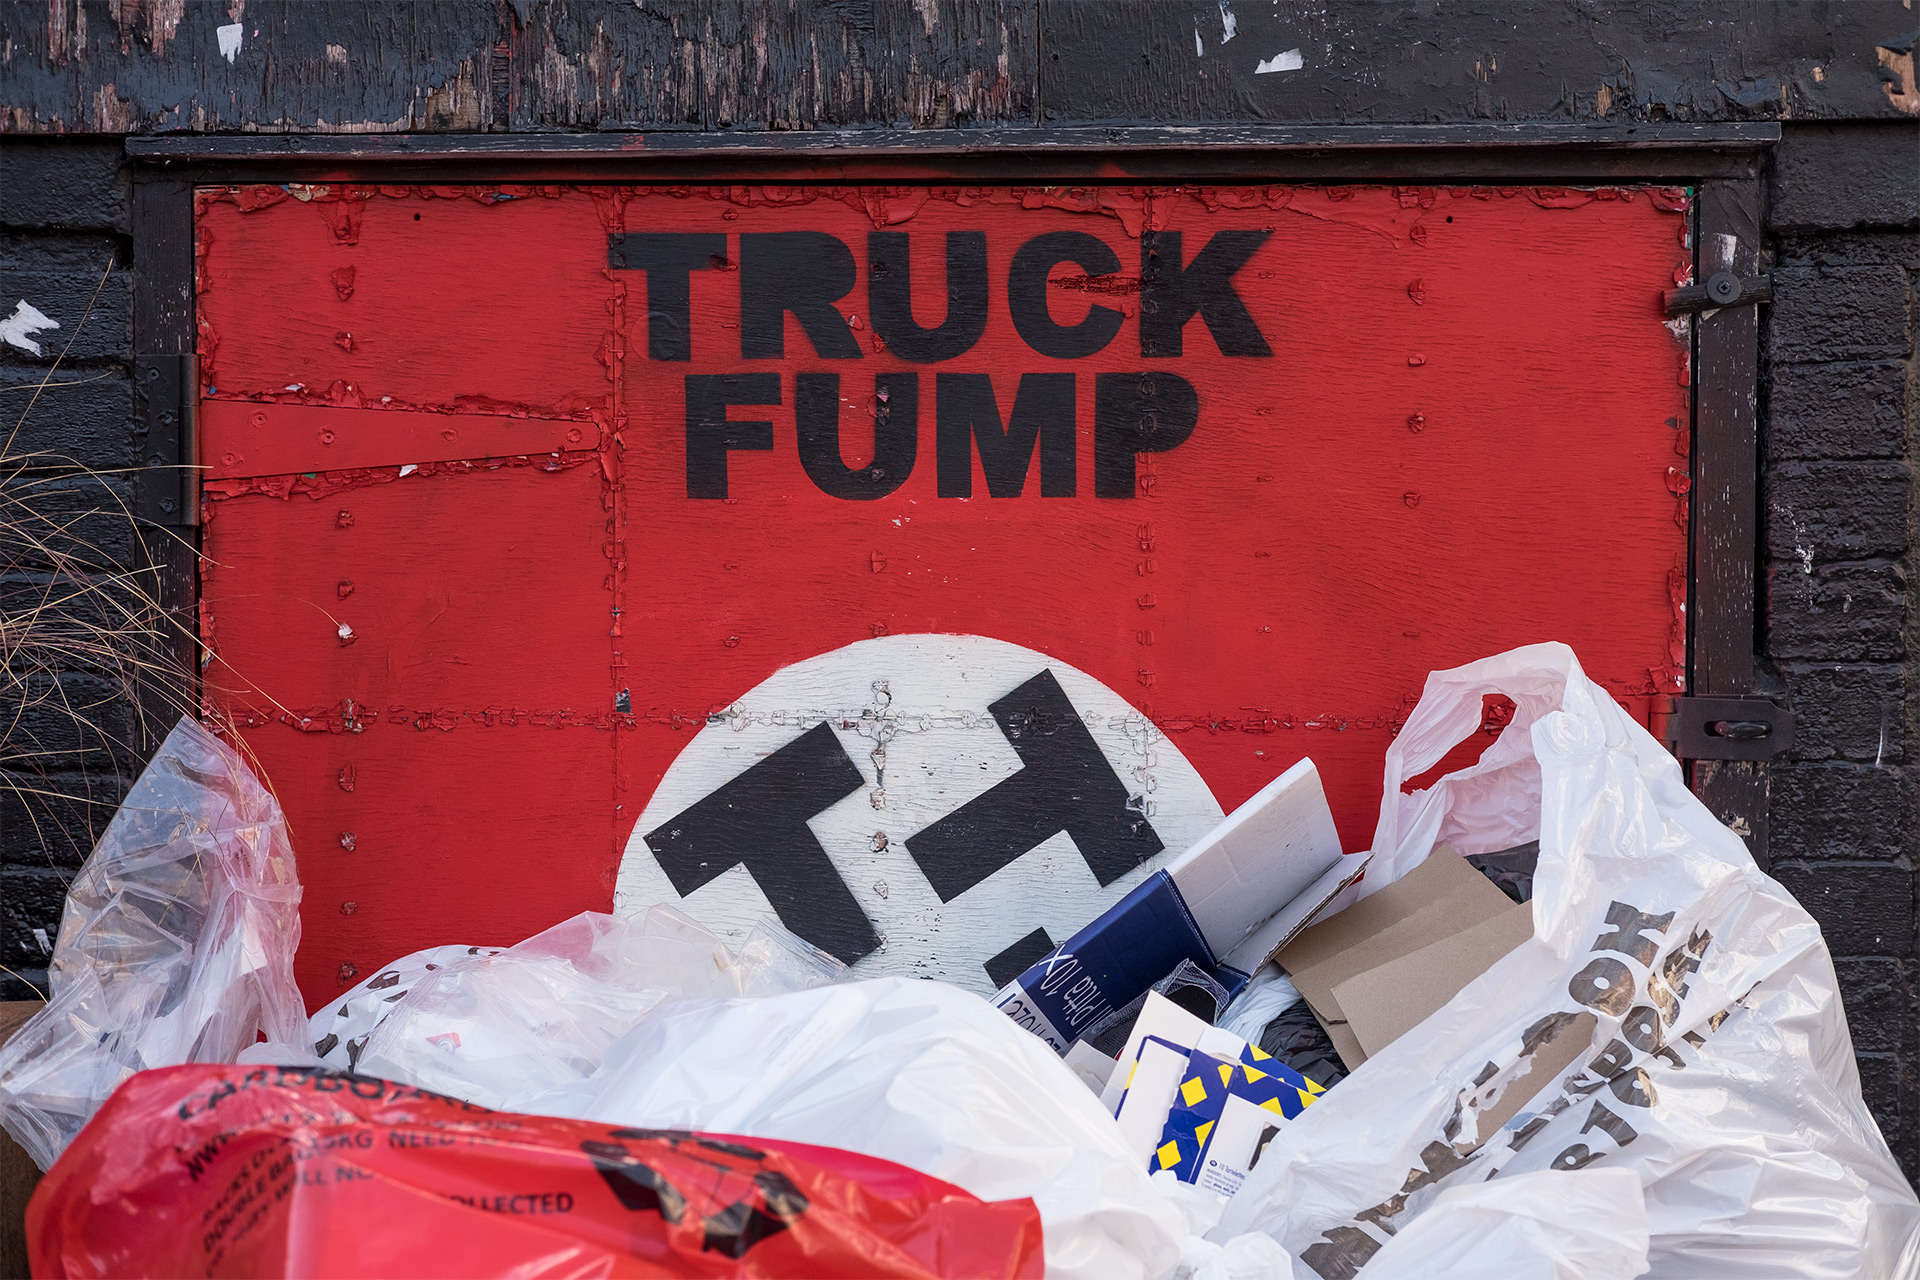 Truck Fump - Street Photography Show the Original Photography - truck fump original